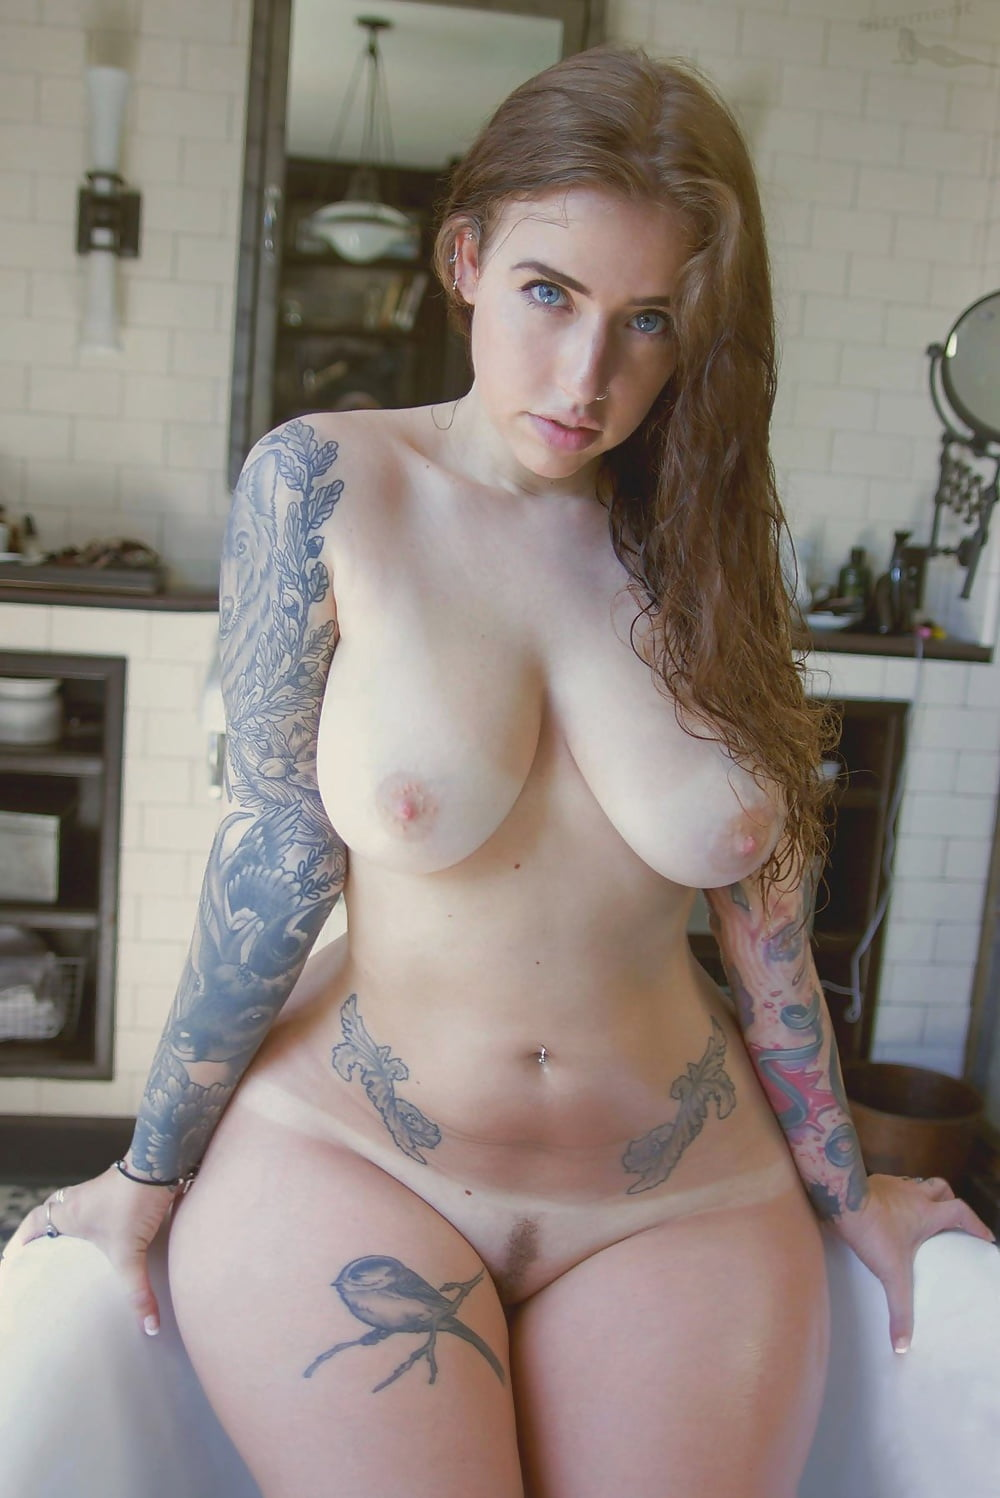 Guy chubby nude tattoo girl